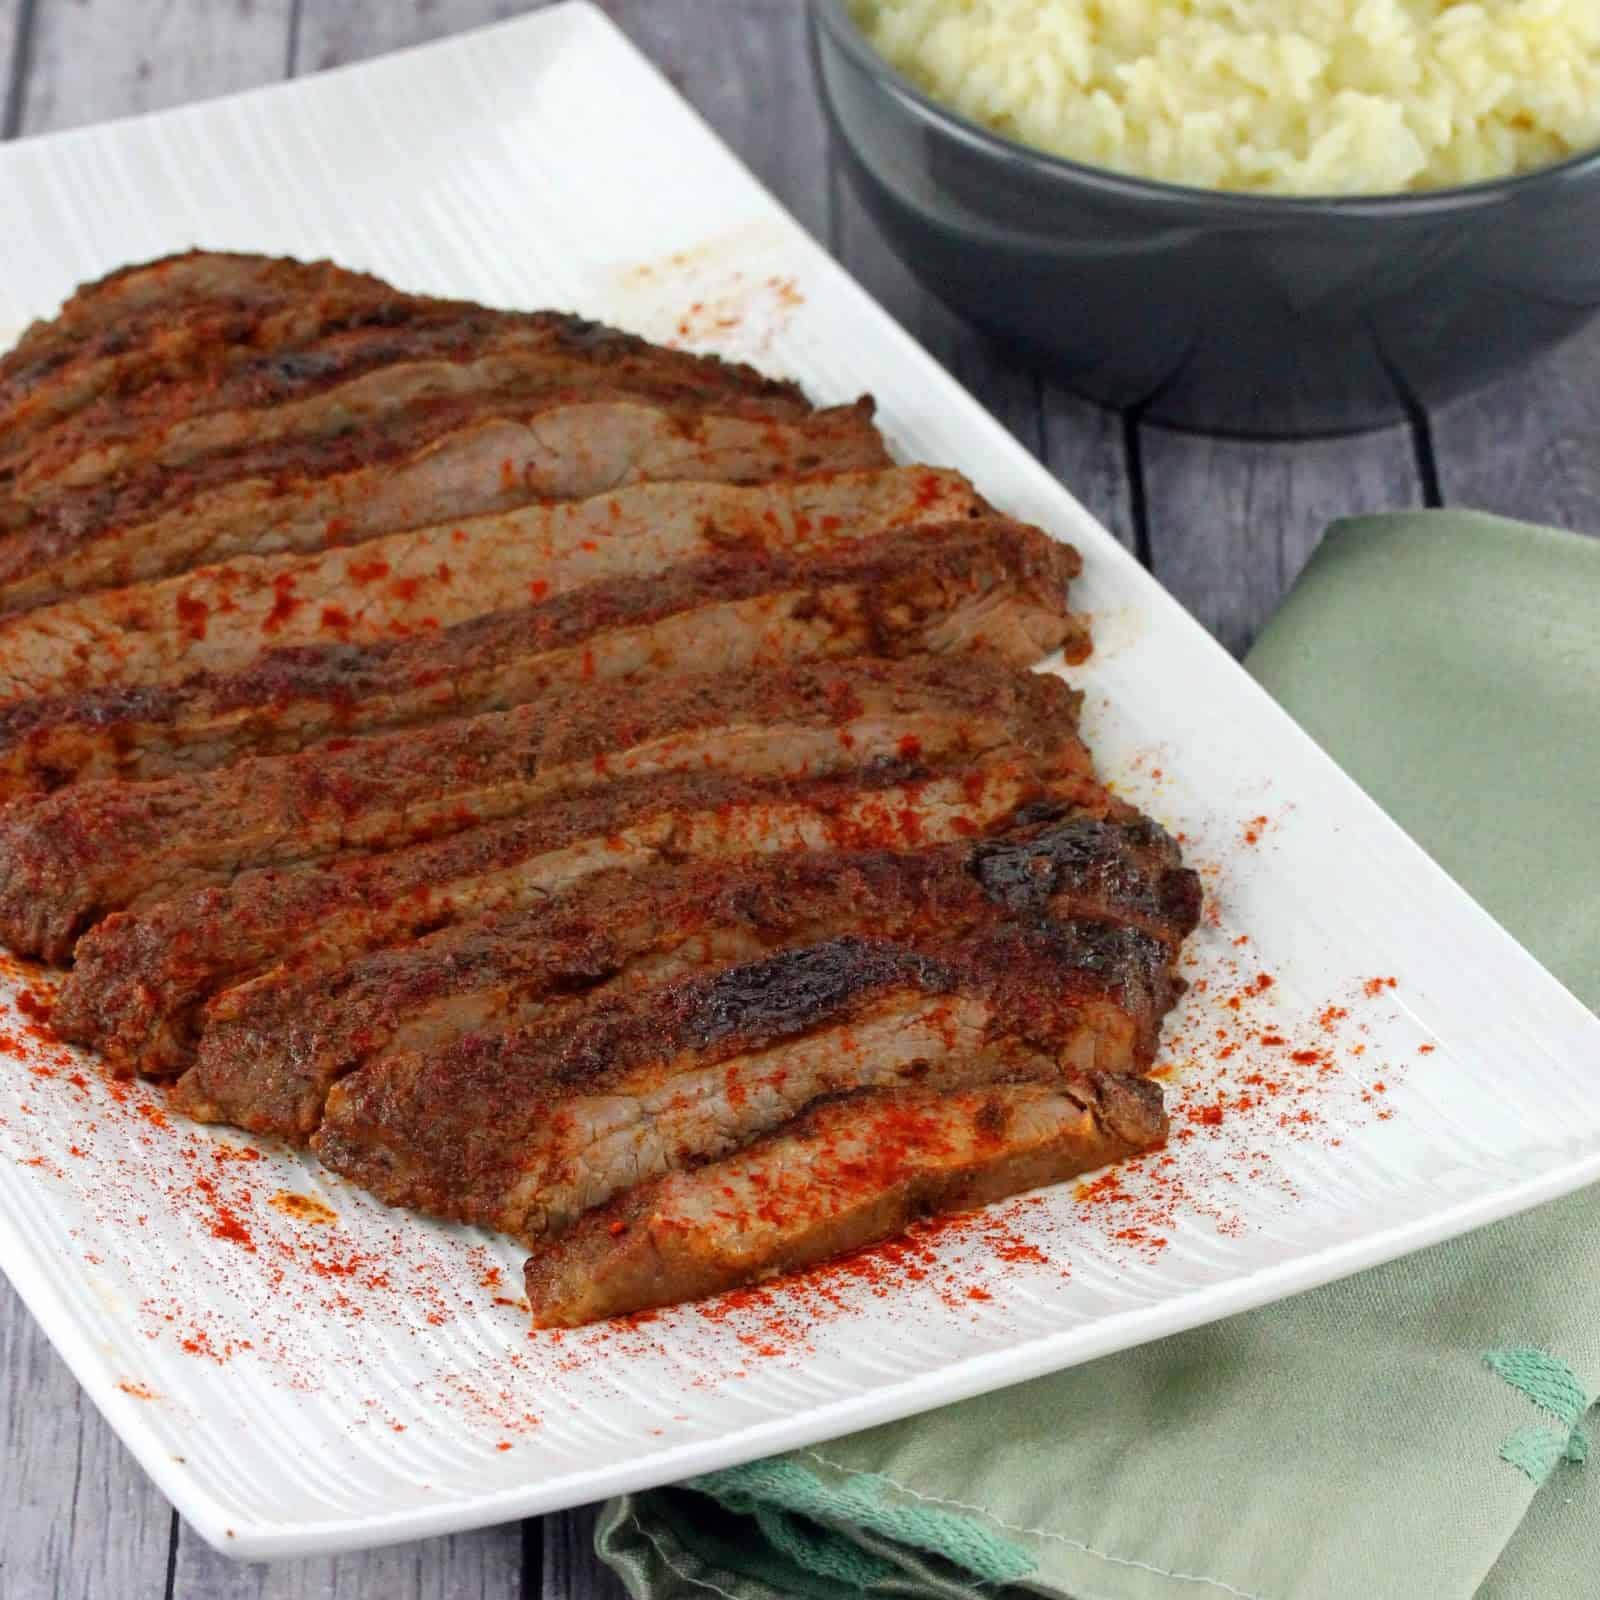 Oven Roasted Flank steak on a white serving plate.